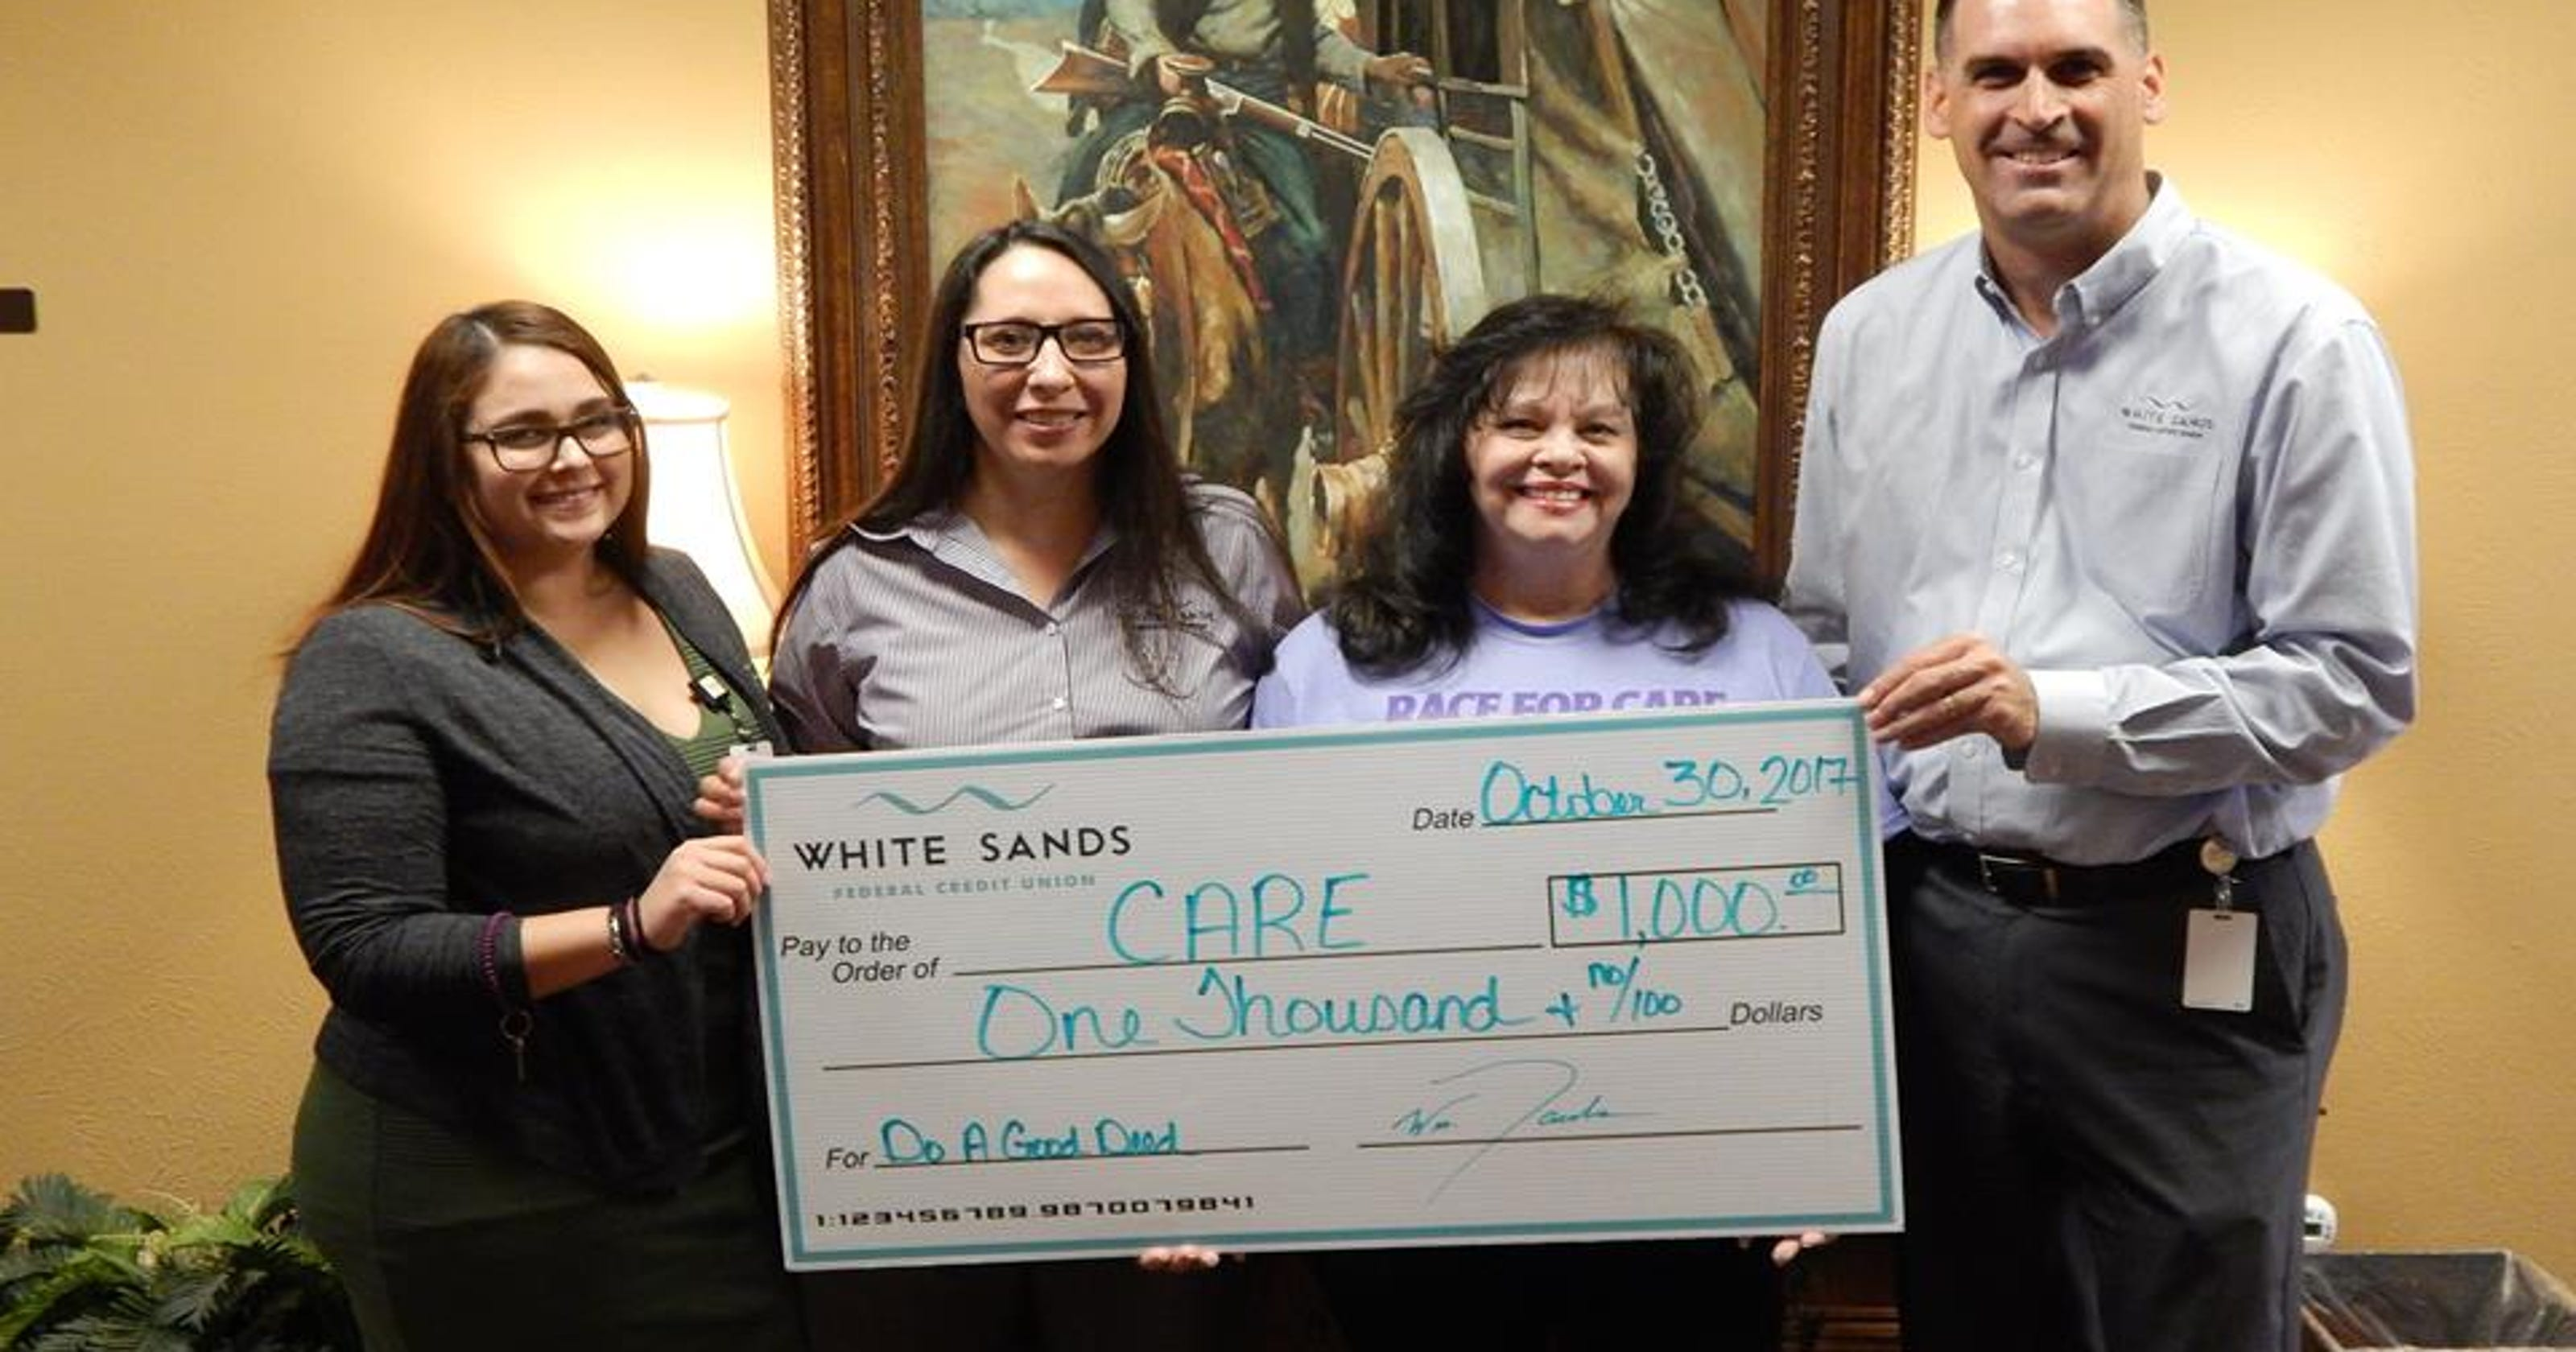 White Sands Federal Credit Union Donates 1 000 To Care